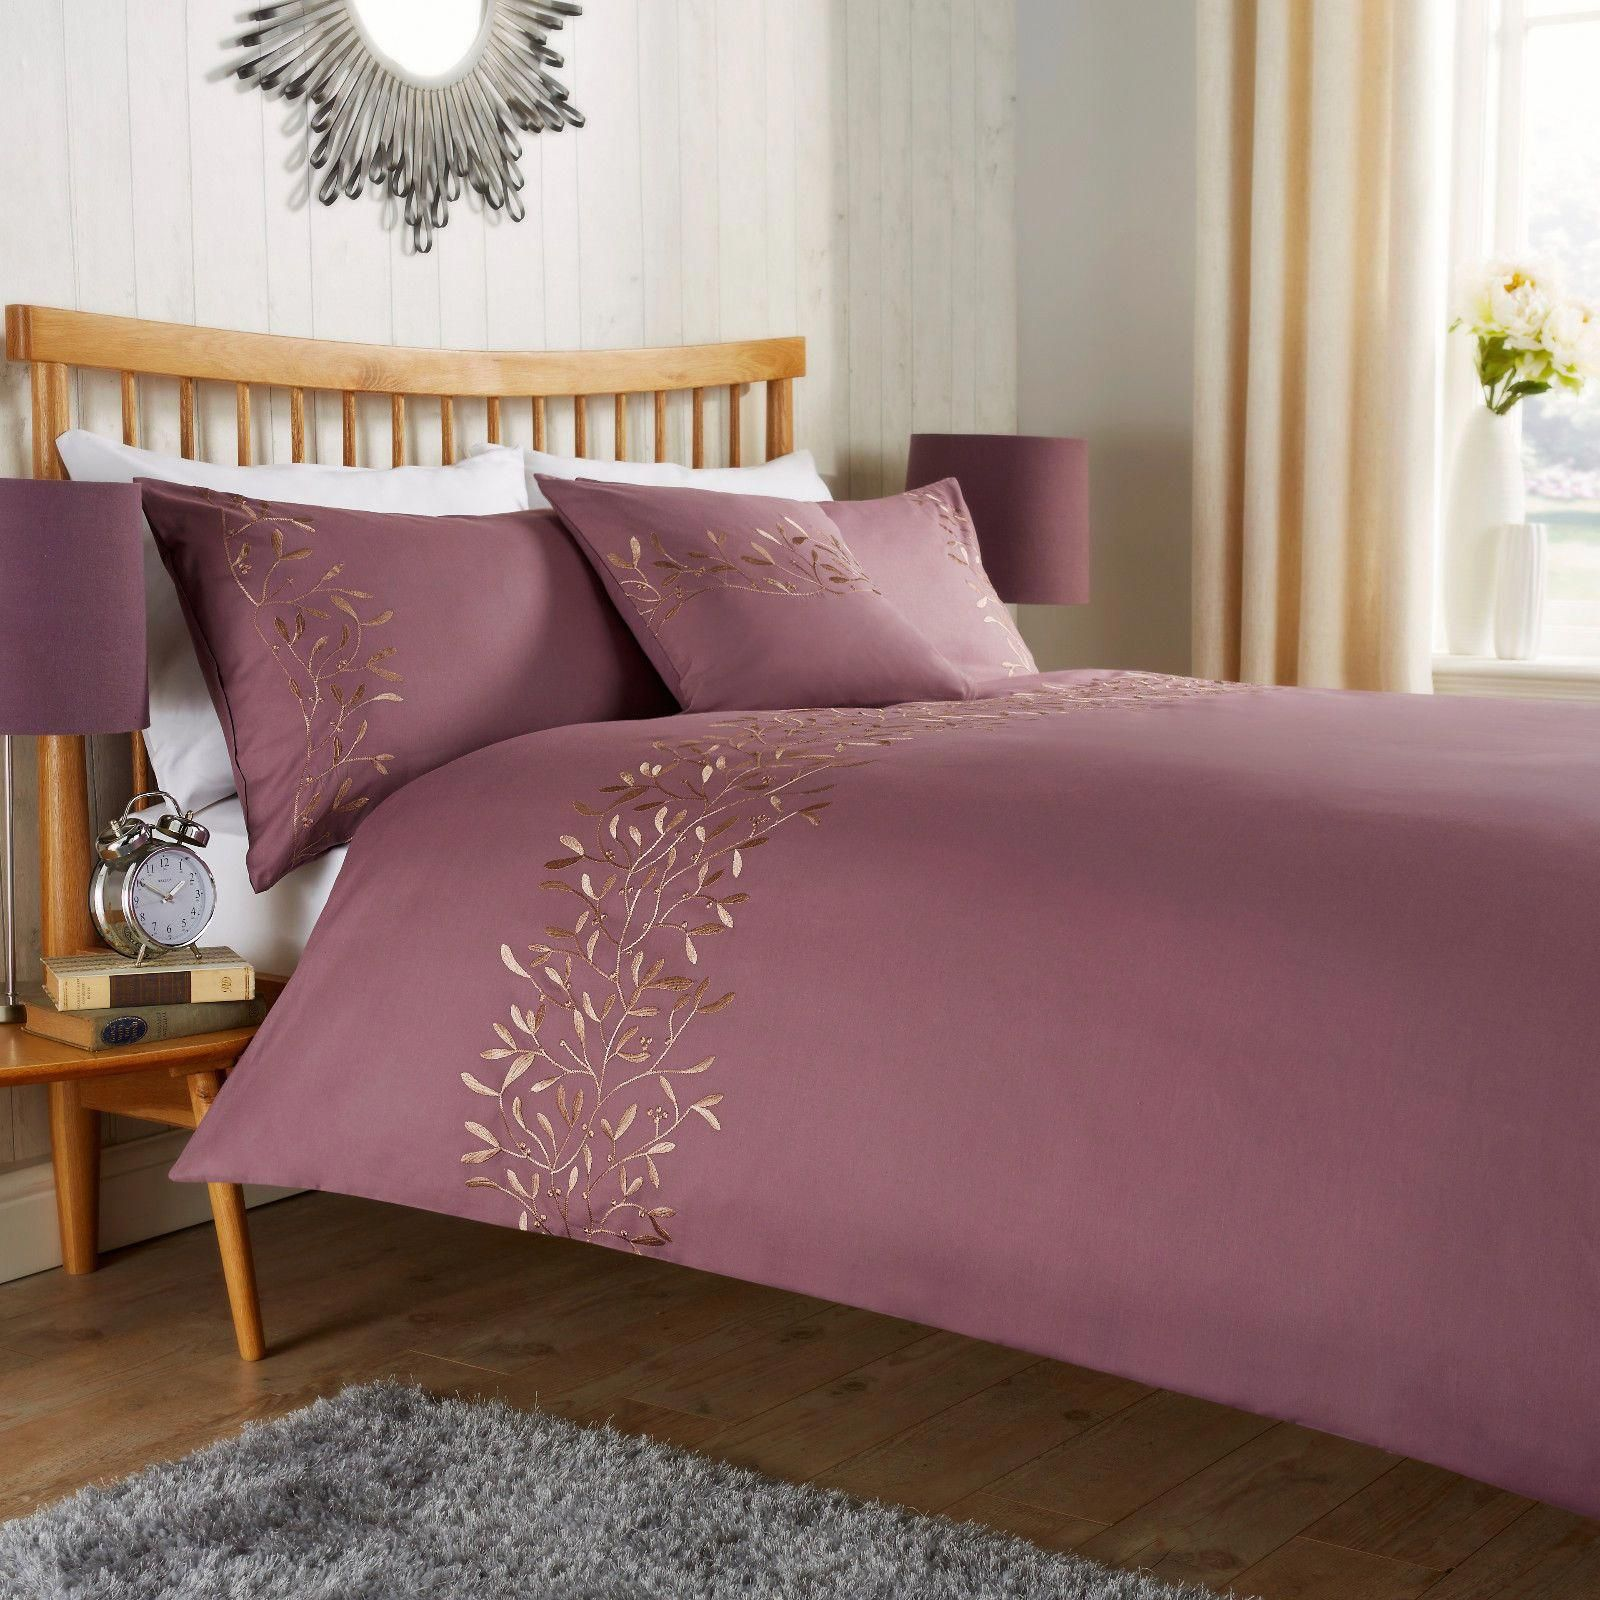 Bed Sheets 2000 Thread Count ImpressiveBedroomIdeas Code